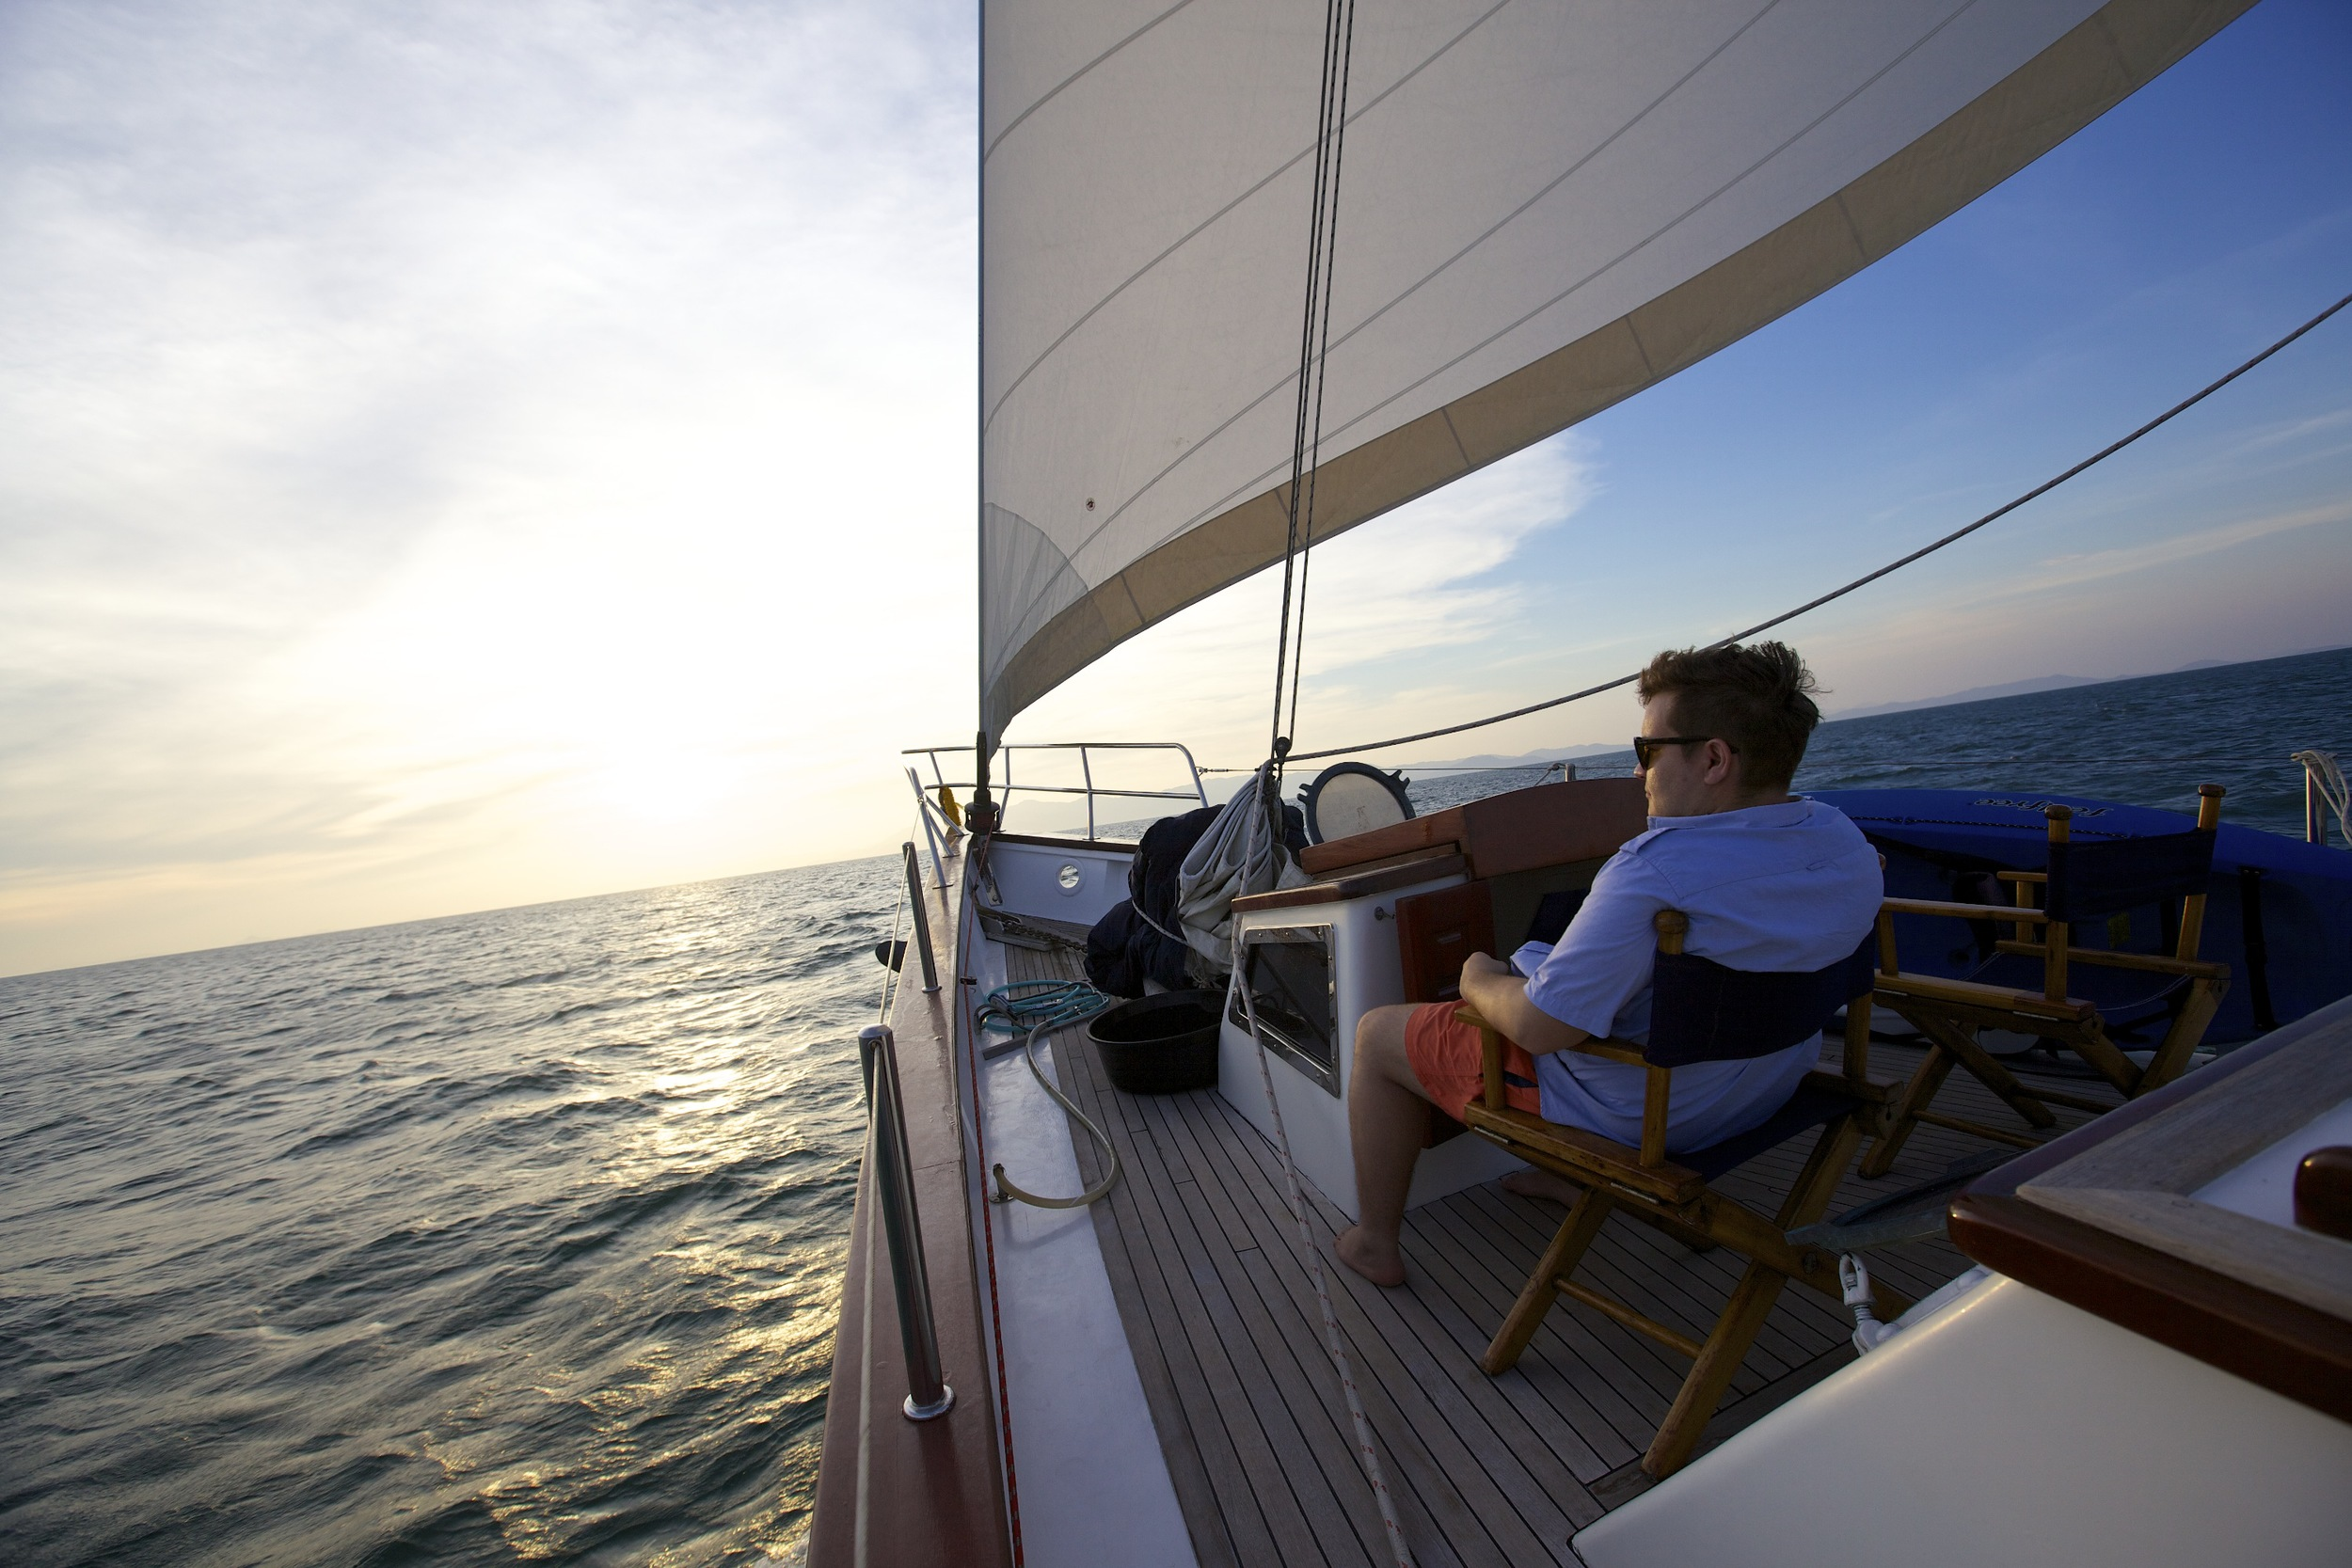 Sitting on the foredeck